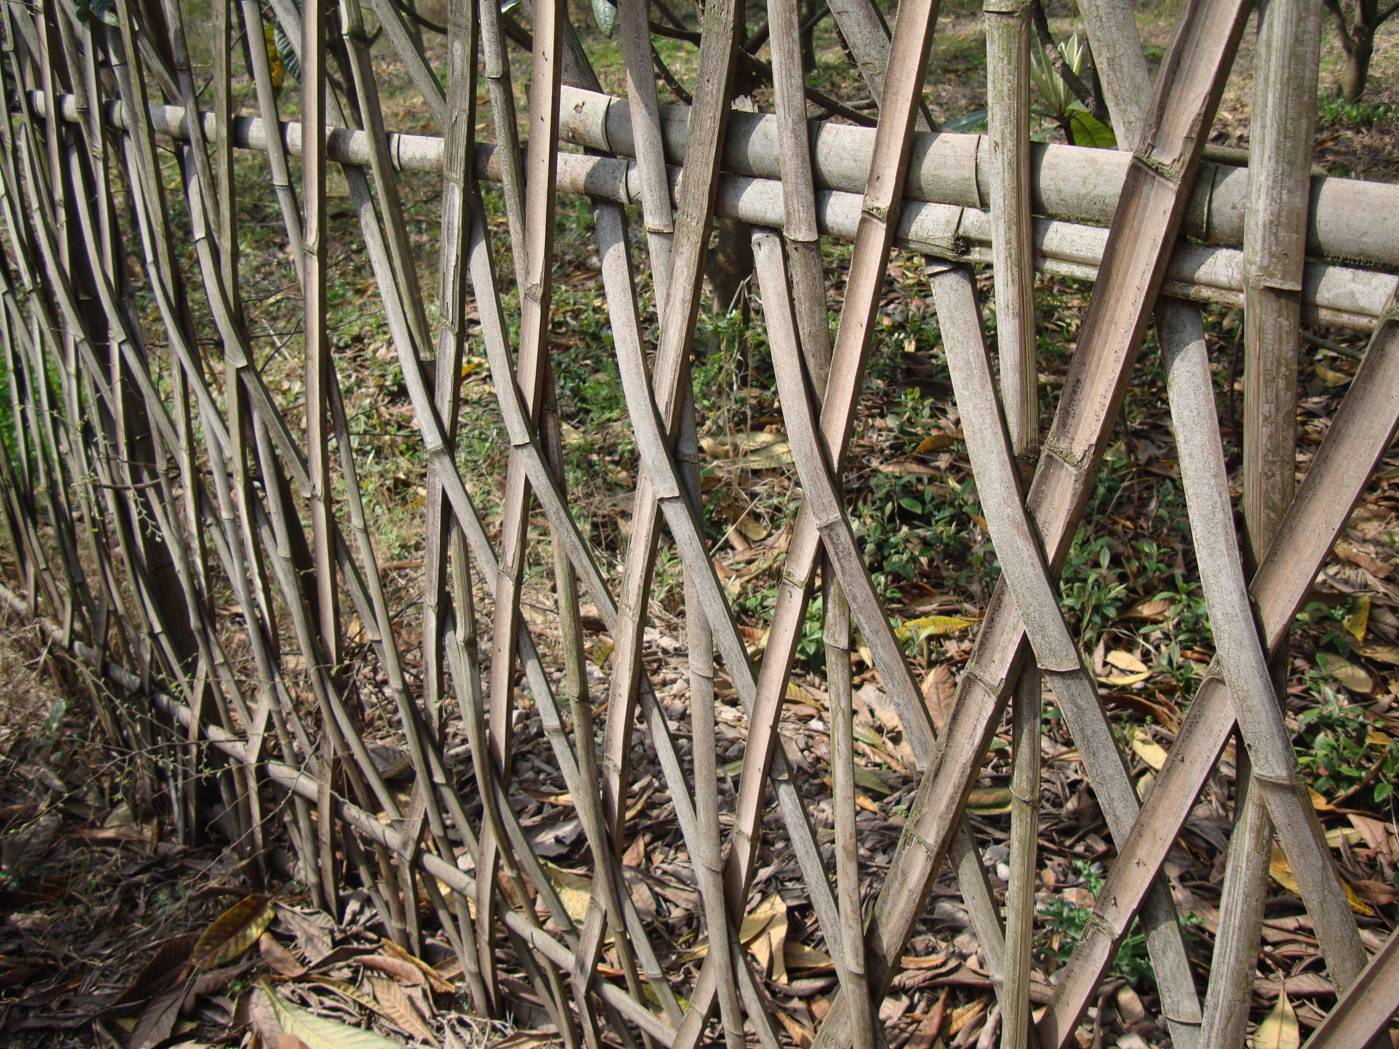 Picture:  Bamboo strip fence.  Yang Shan, Wuxi, China